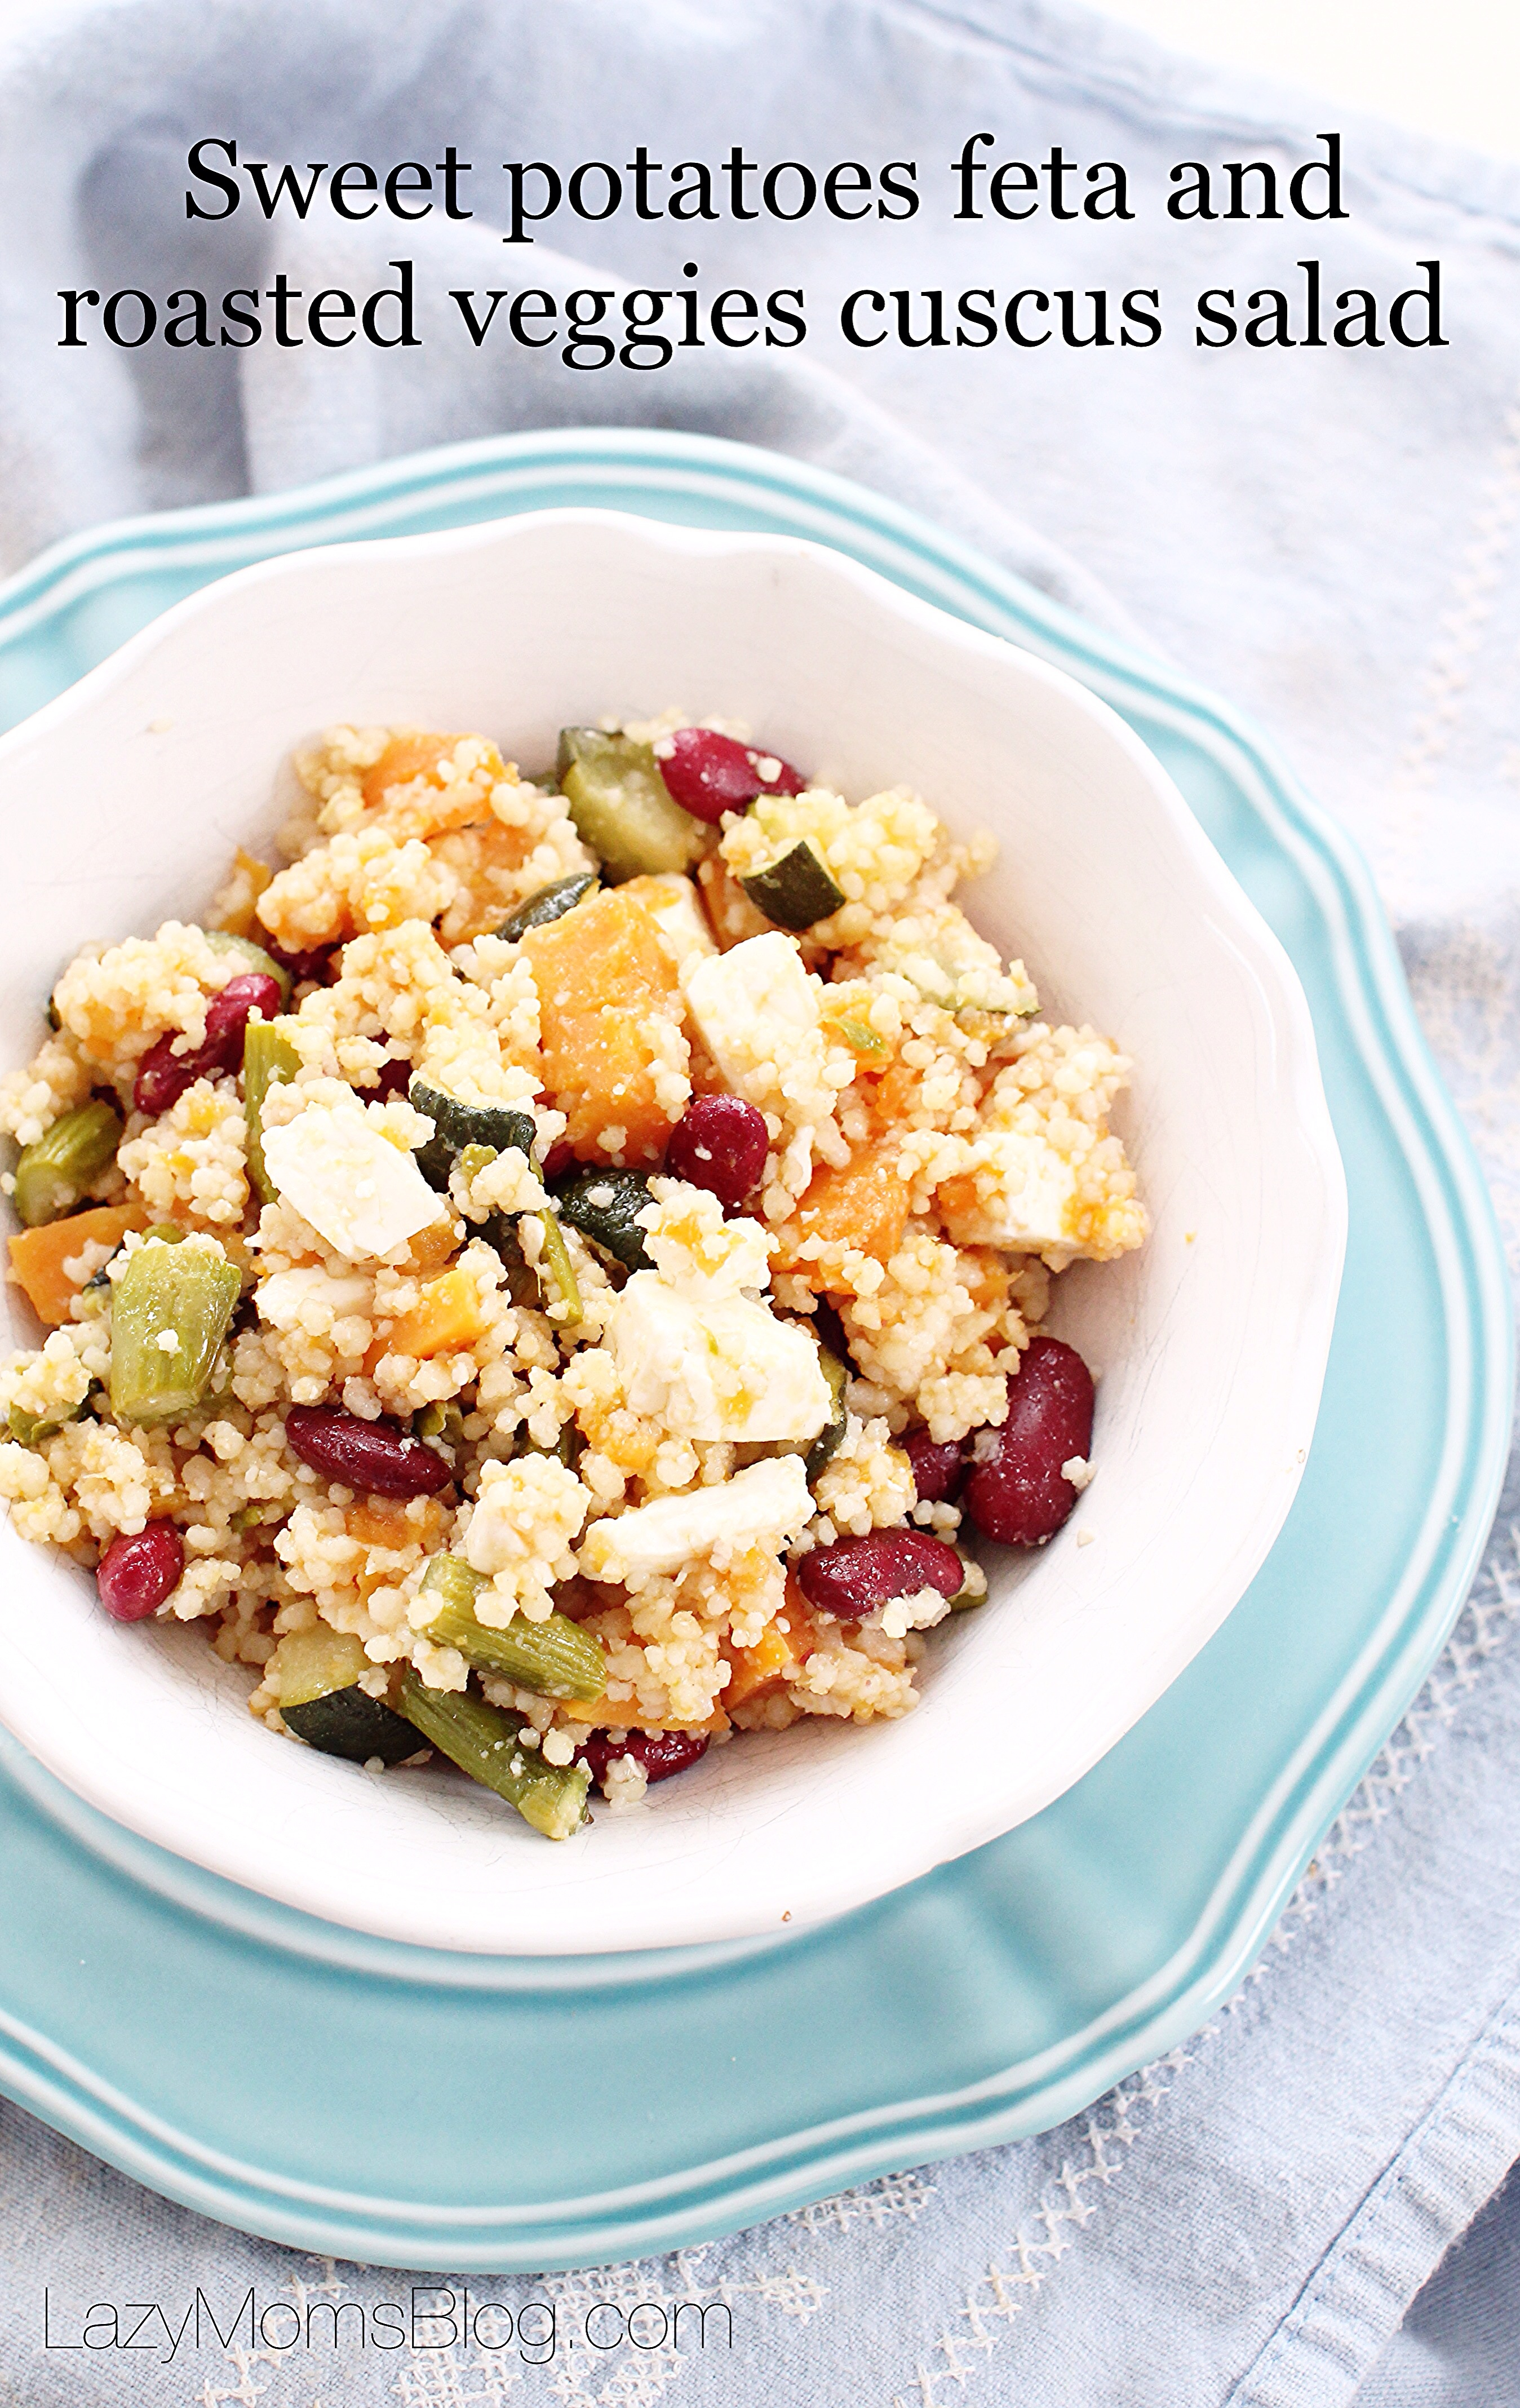 This healthy and easy salad is so filling and delicious, full of flavour and frugal!